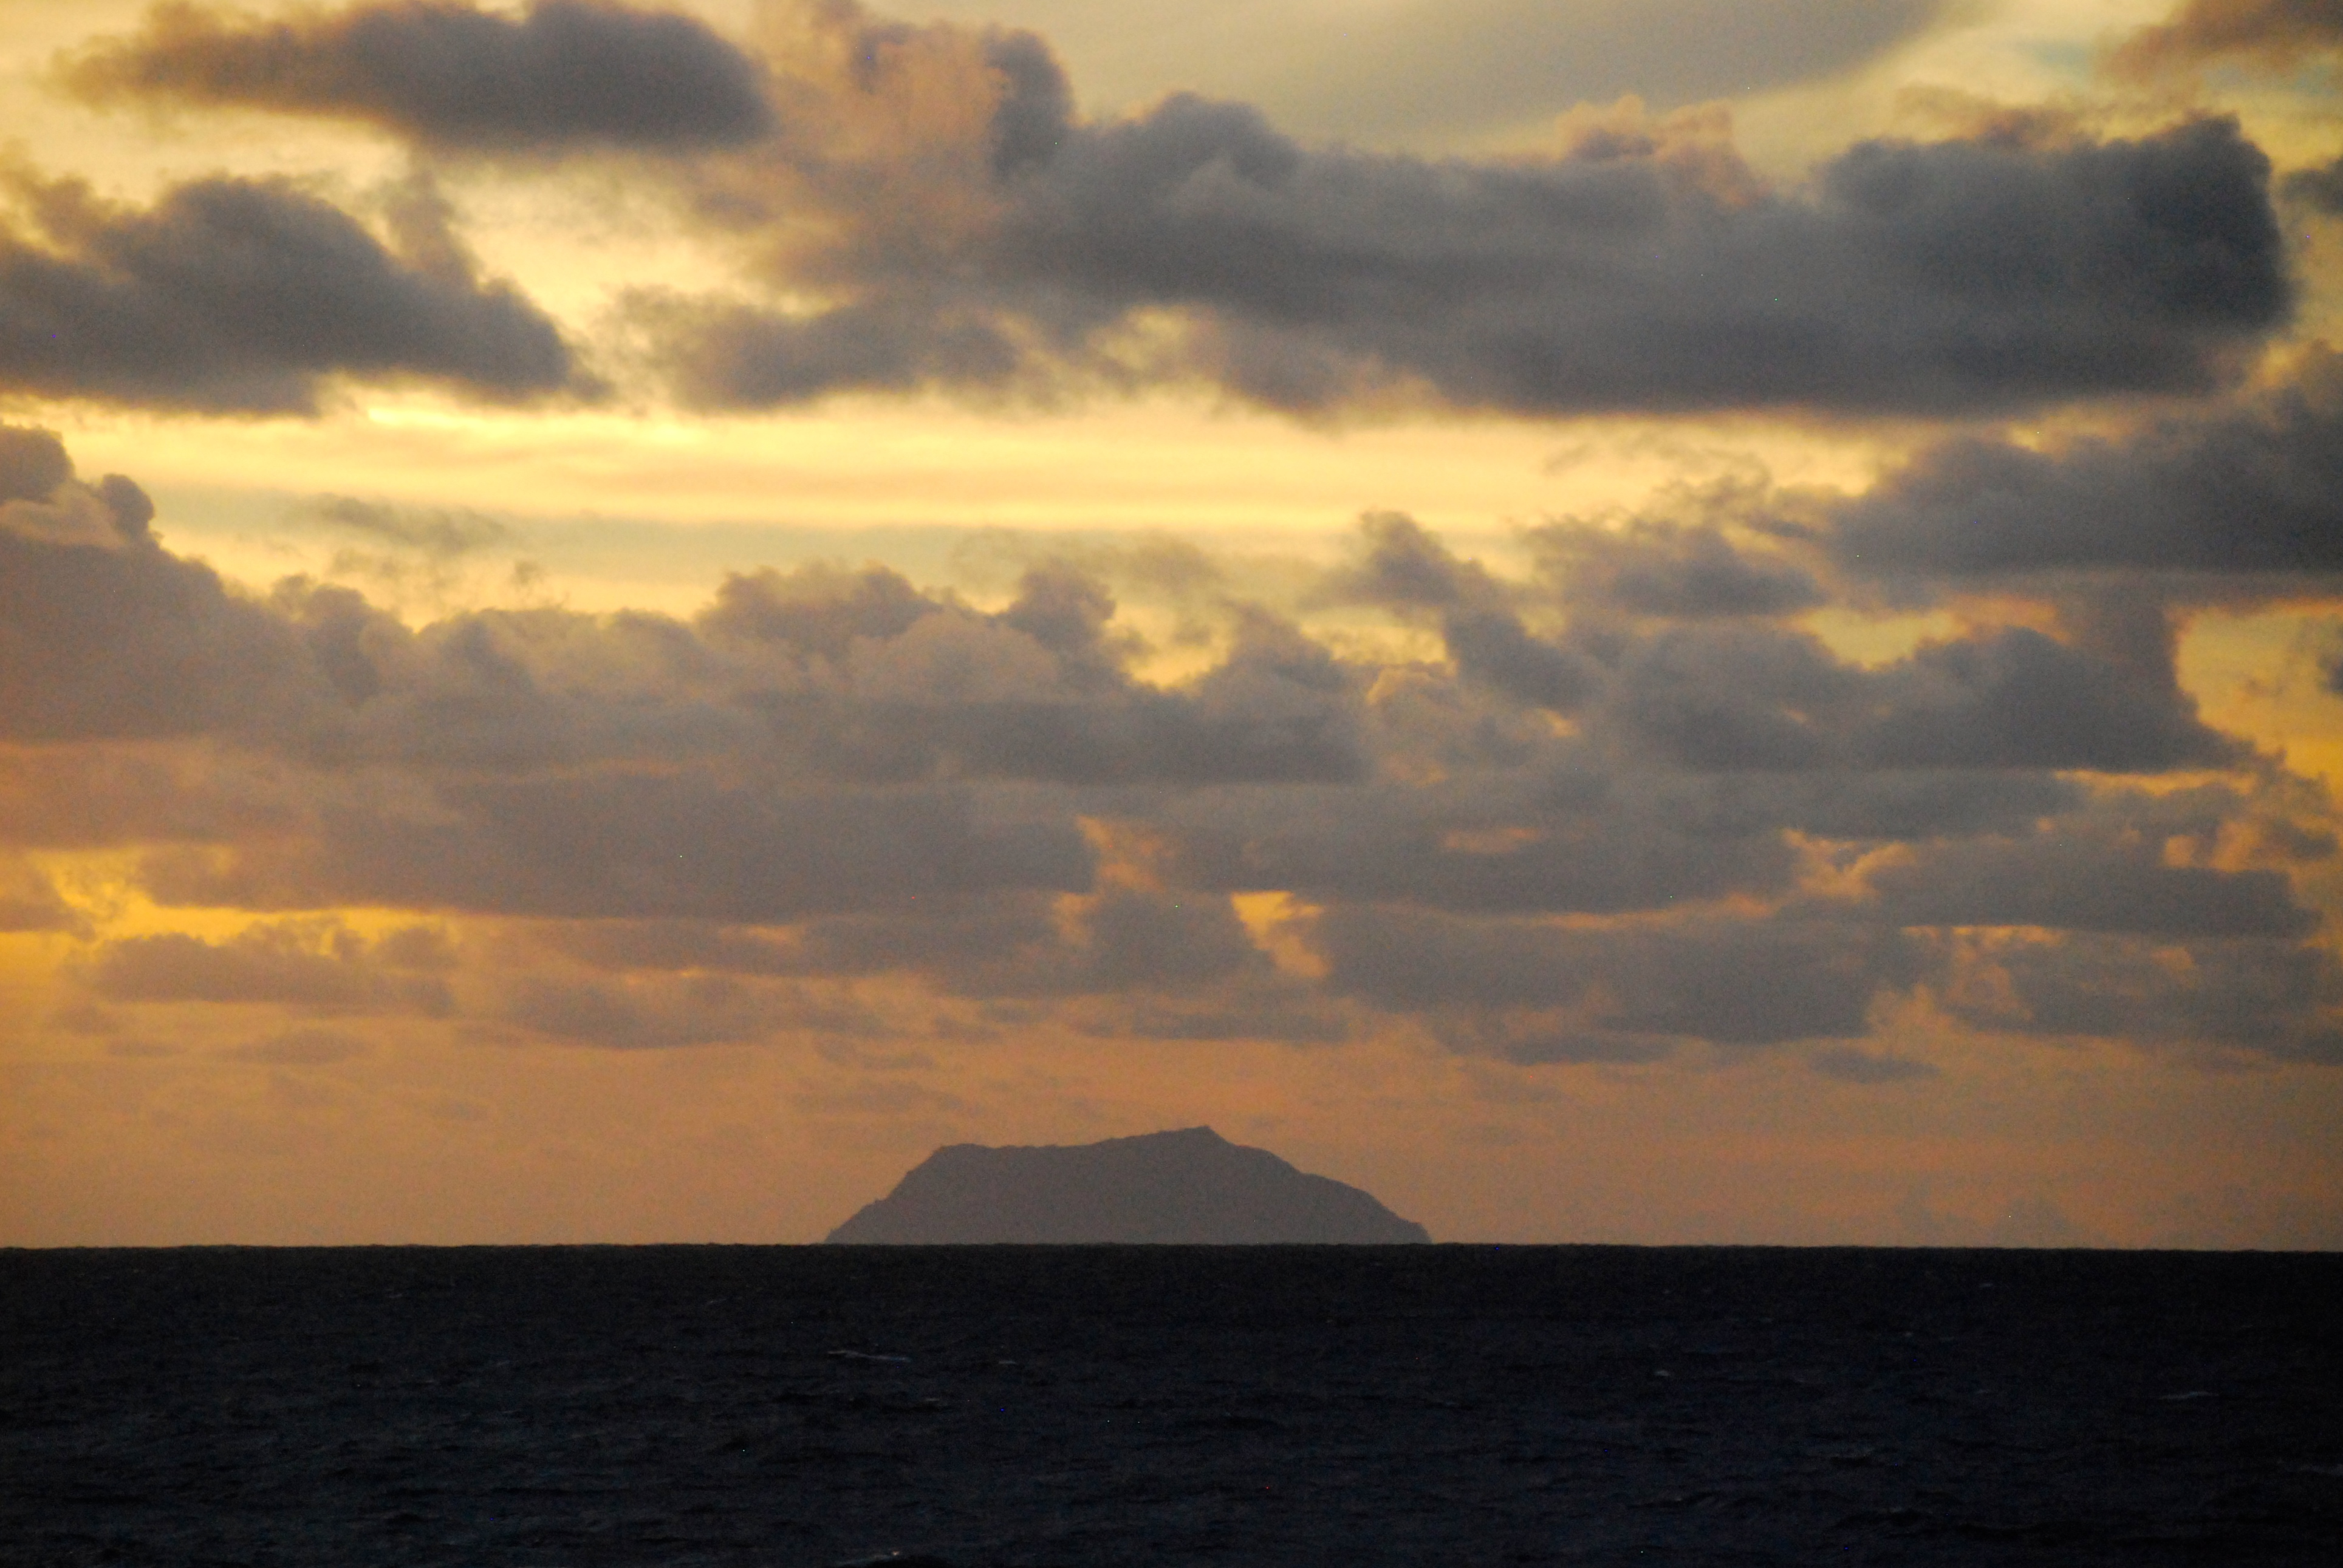 Silhouette of Pitcairn Island - Photo Credit: Lee Mylne